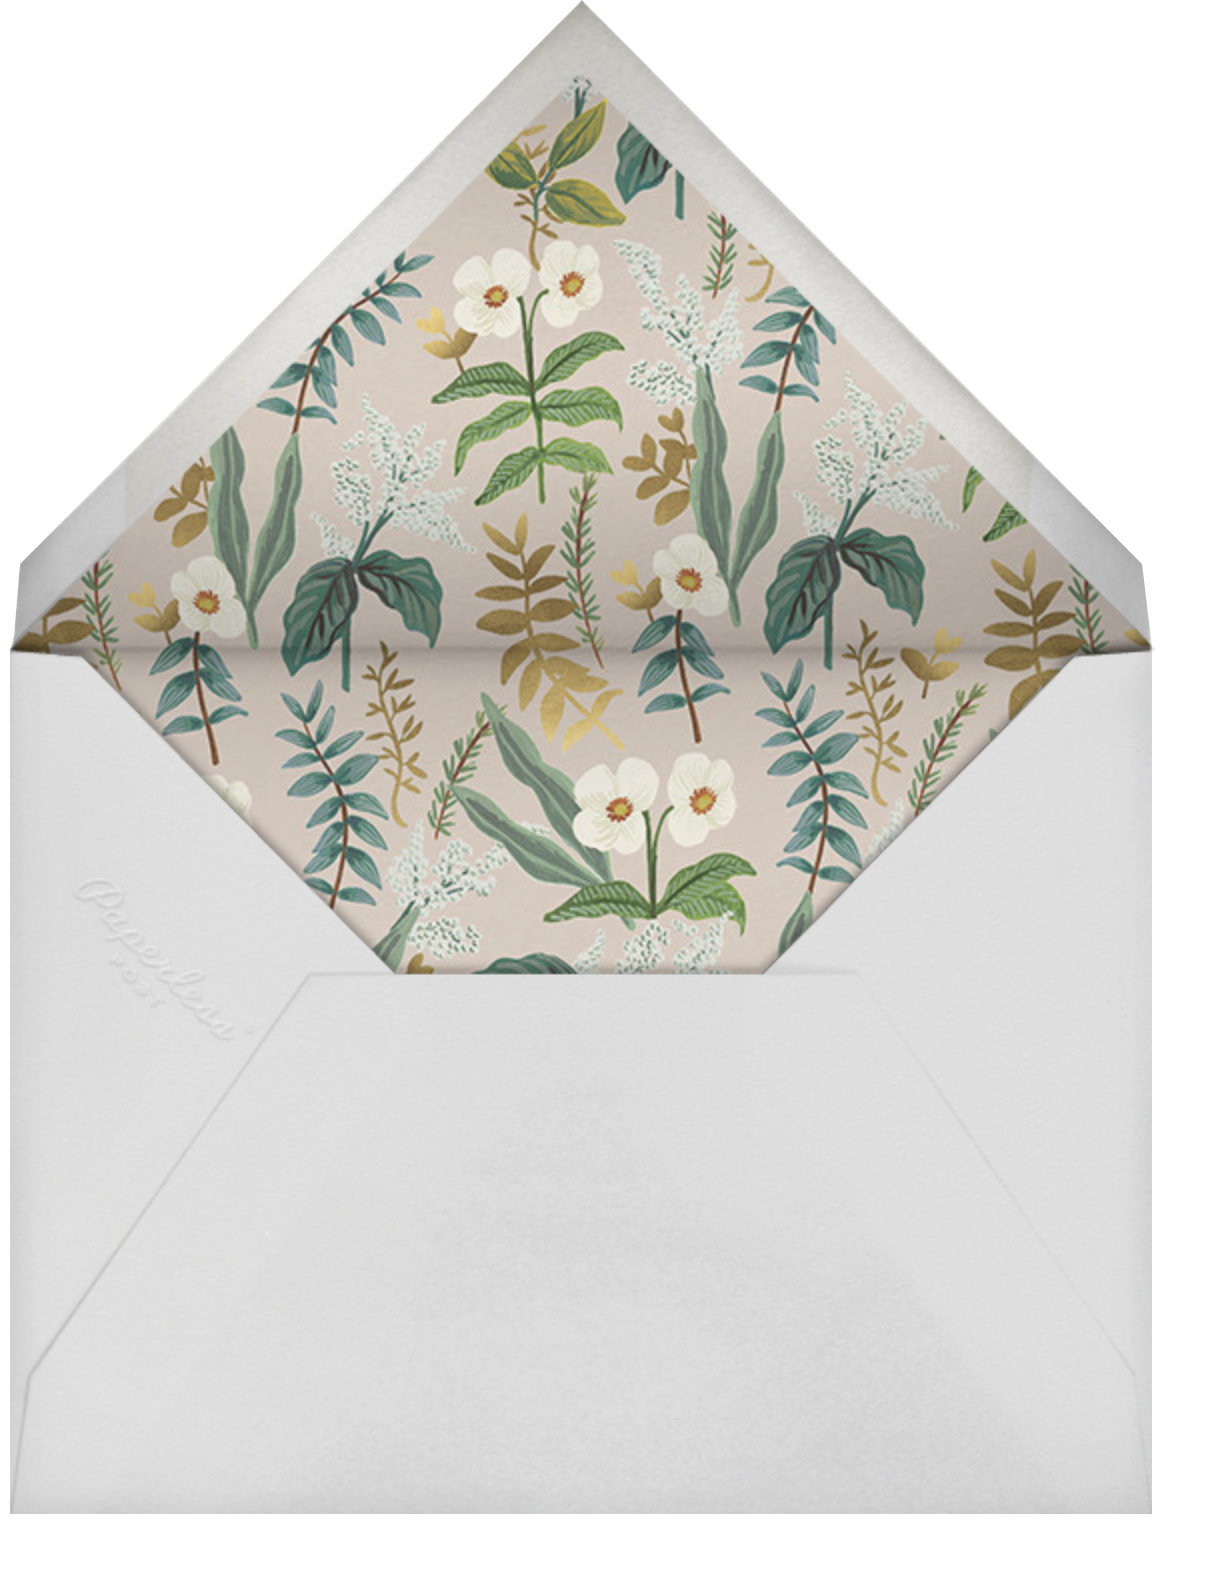 Meadow Garland (Square) - Rifle Paper Co. - Printable invitations - envelope back